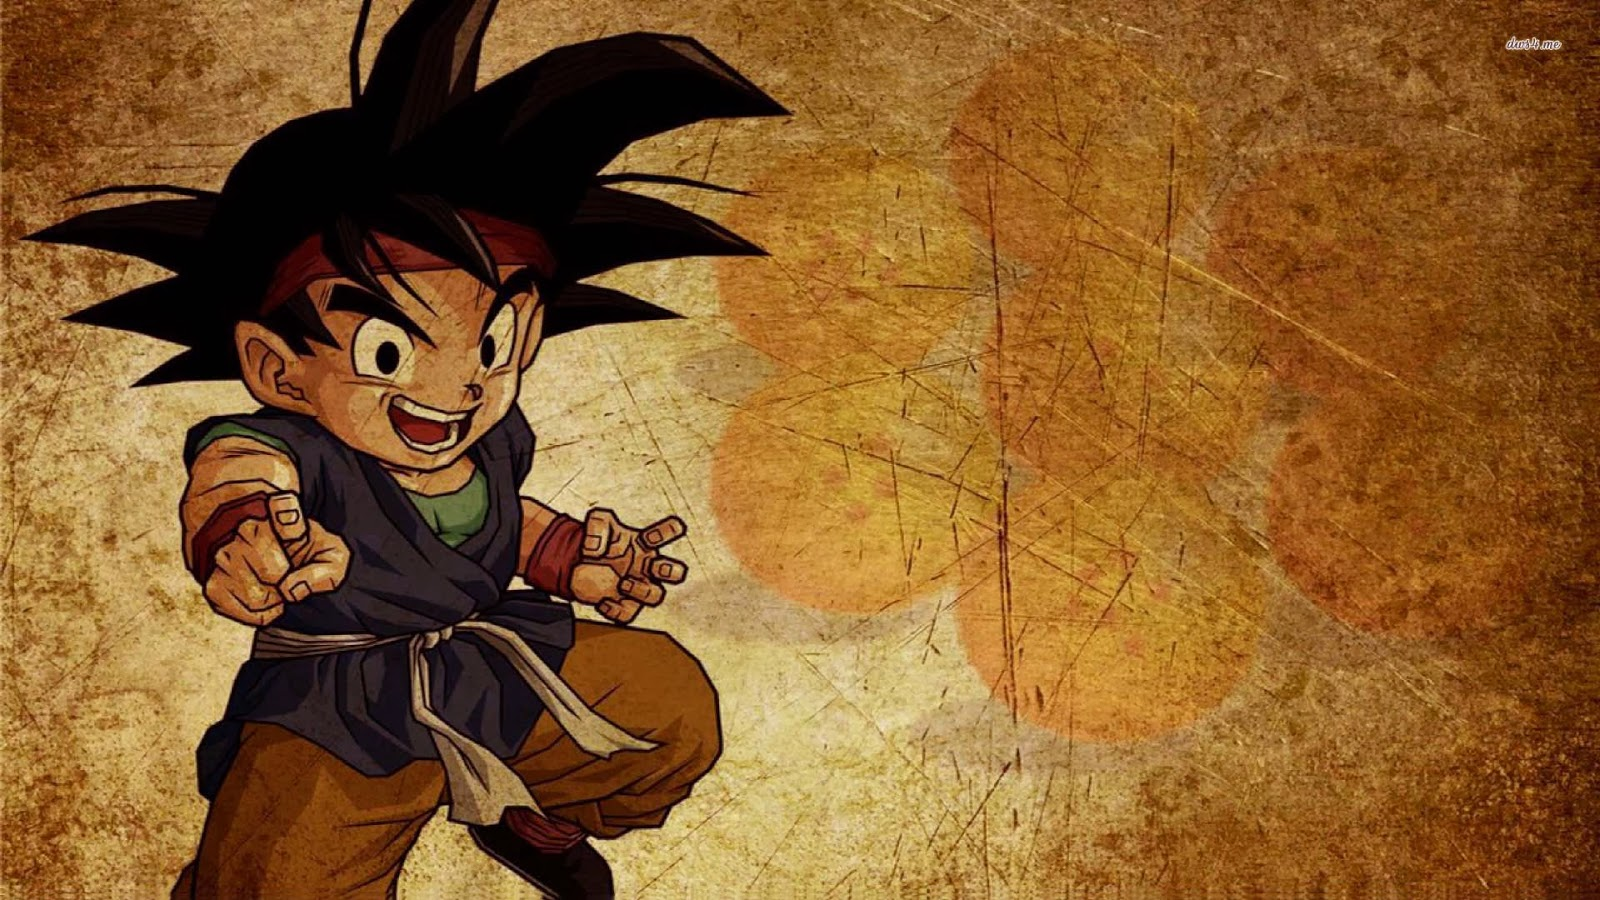 Dragon Ball Z Free HD Wallpaper